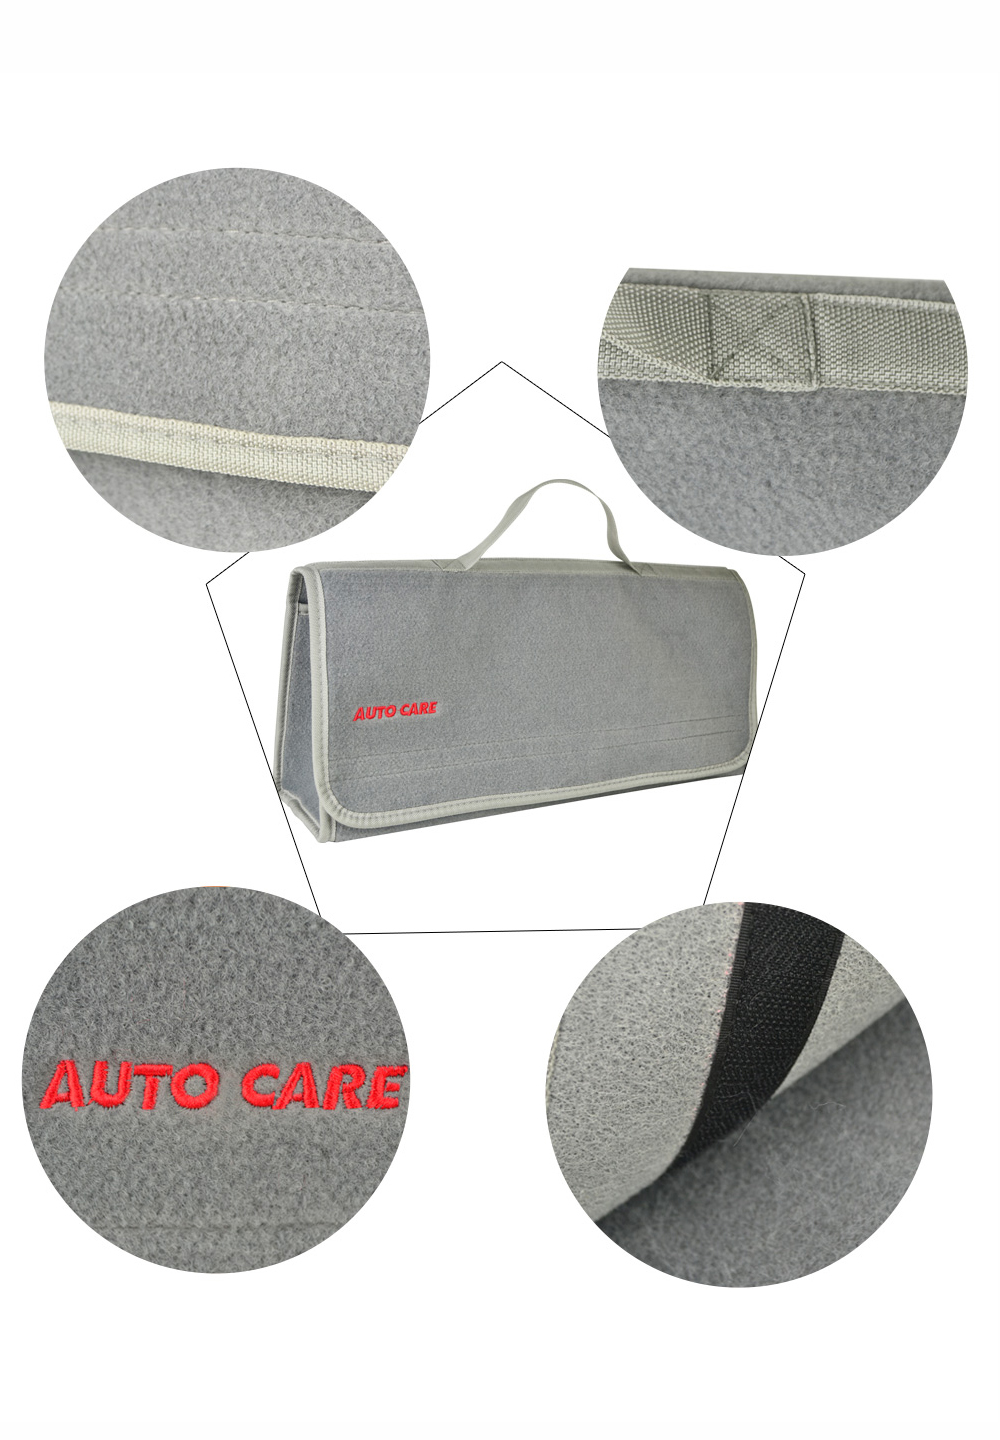 Auto Care Large Car Smart Tool Bag Grey Trunk Storage Organizer Bag Built in strong Velcrofix system holds to car carpet 5